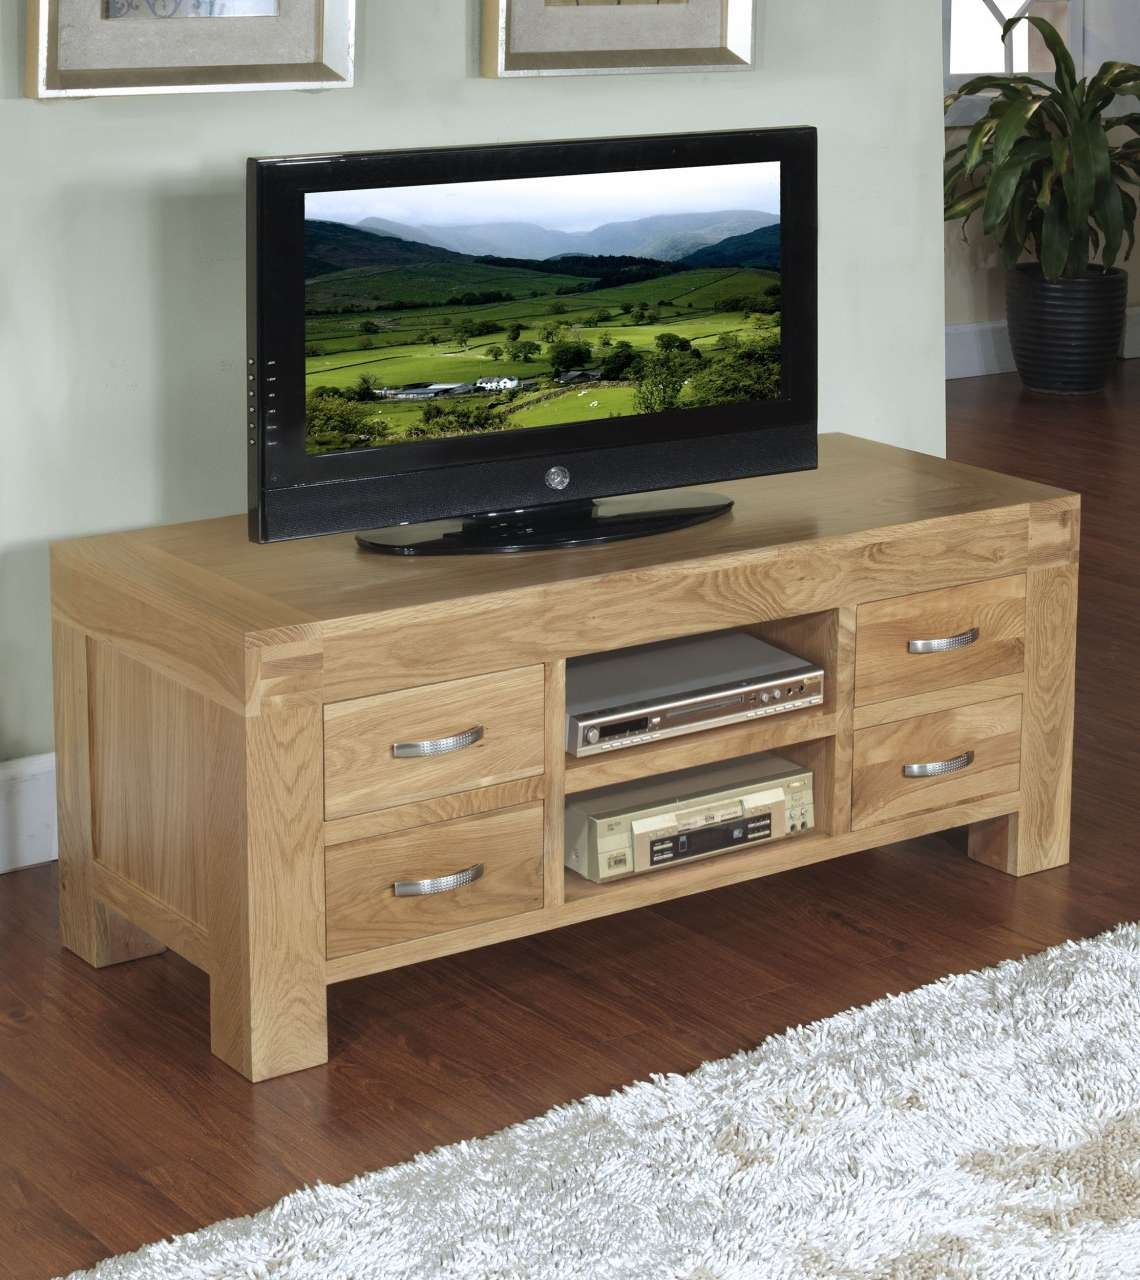 Cabinet Tv Stand Furniture | Uv Furniture Within Widescreen Tv Cabinets (View 5 of 20)